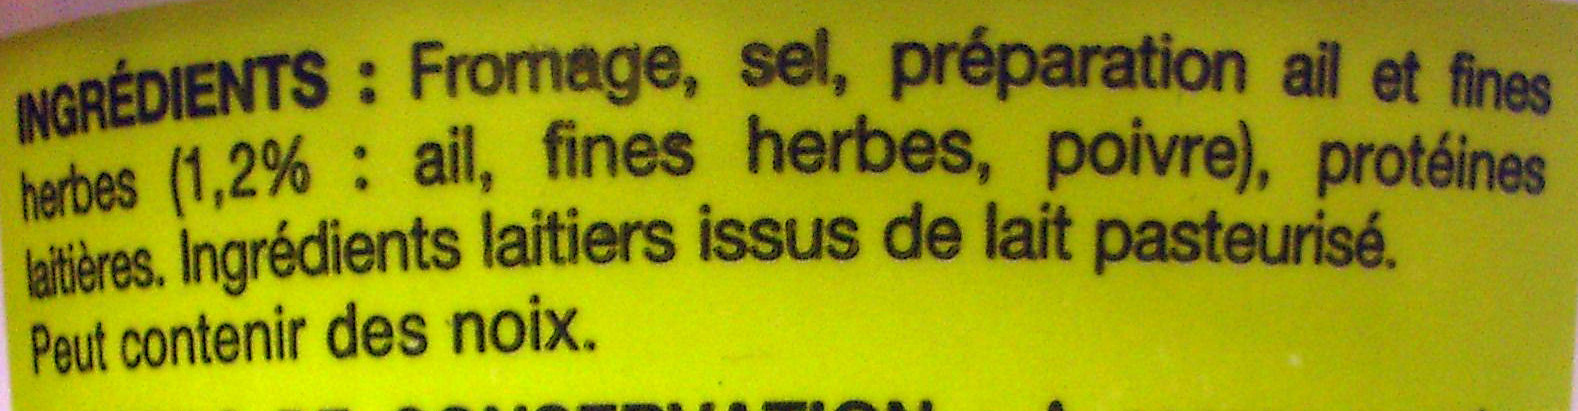 Fromage ail et fines herbes (25 % MG)  - Ingrédients